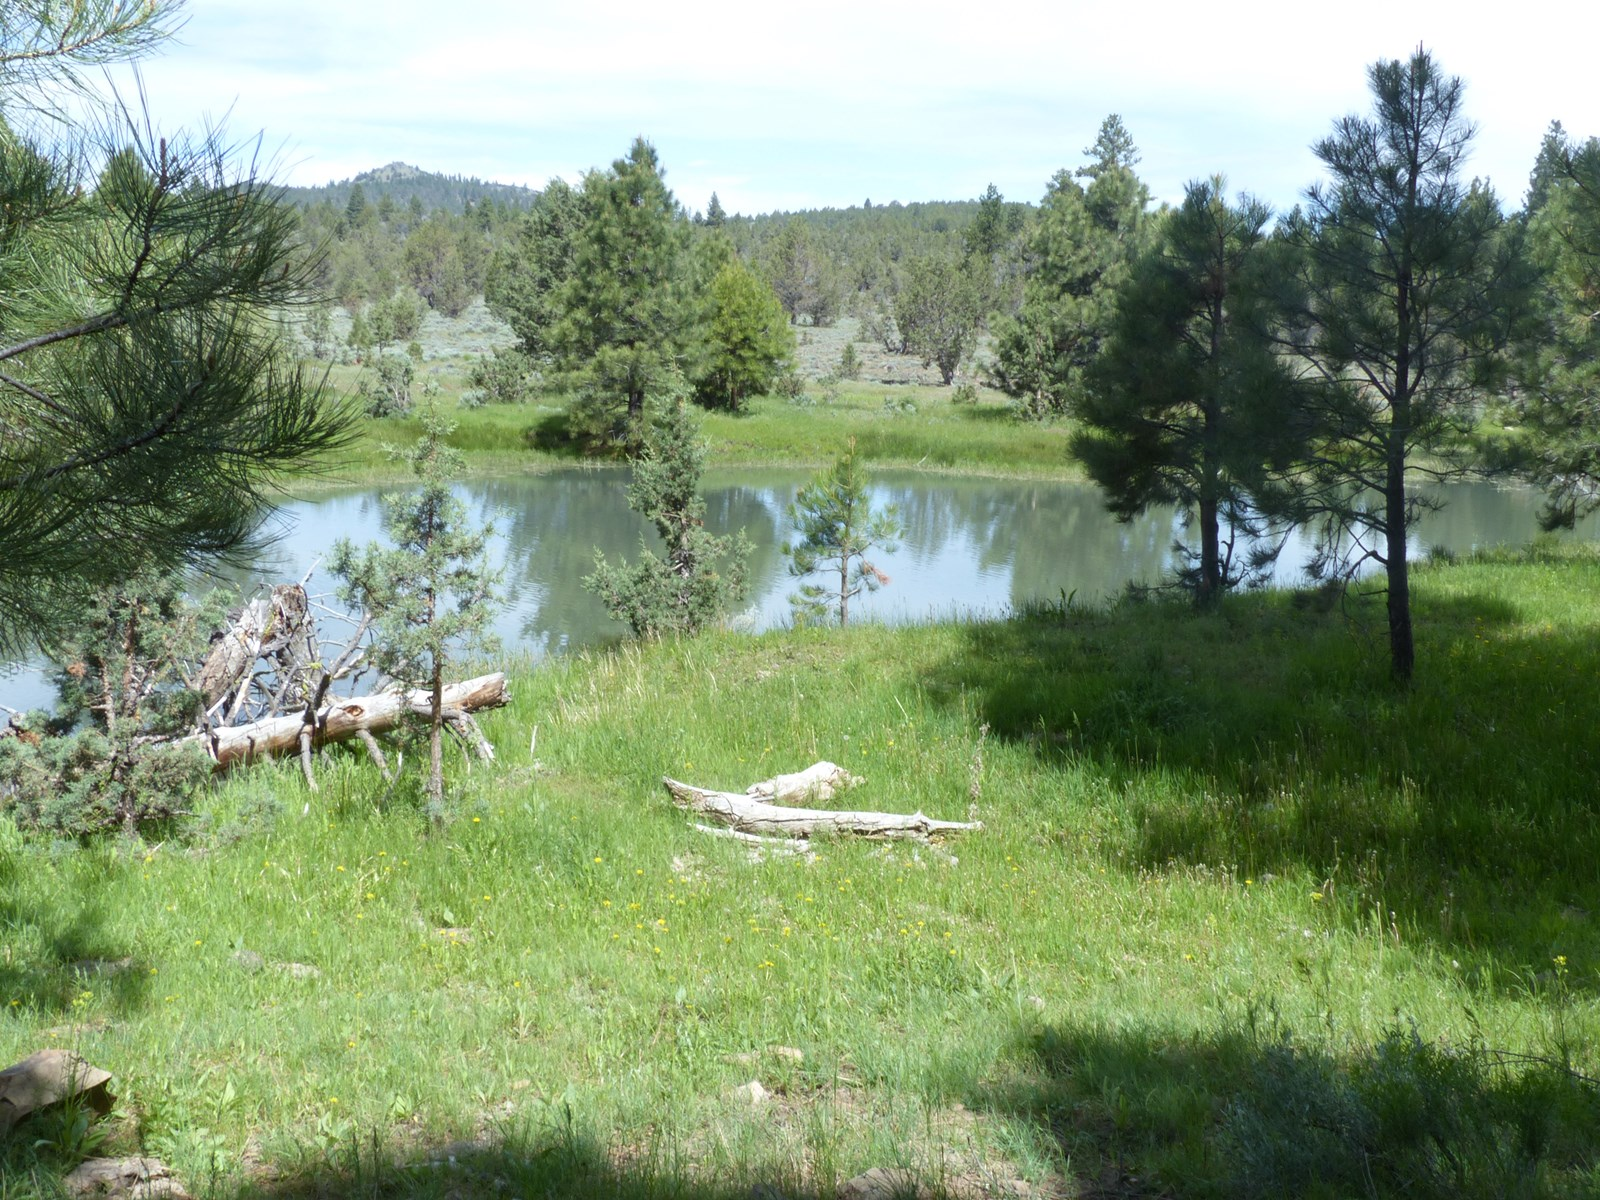 EASTERN OREGON HUNTERS OASIS - MALHEUR FOREST